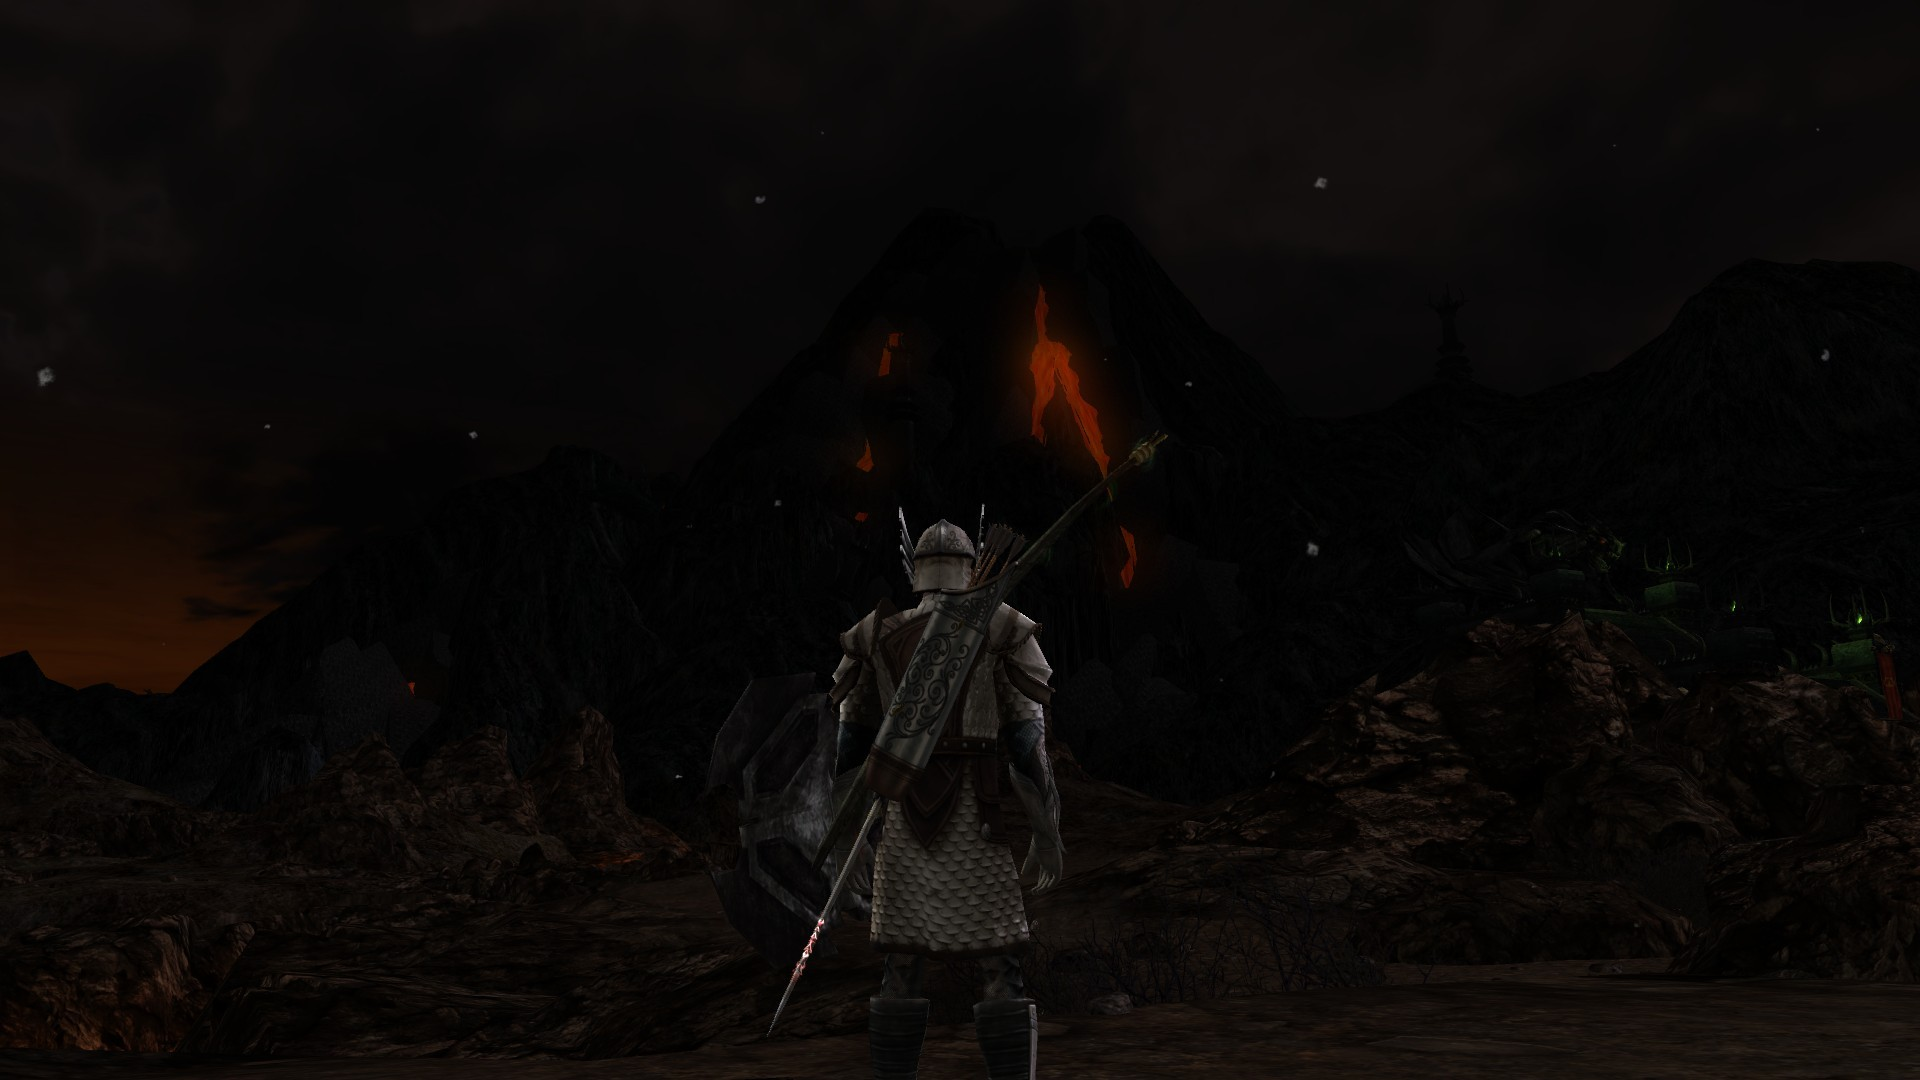 Lord of the Rings Online - Mt. Doom LotRO